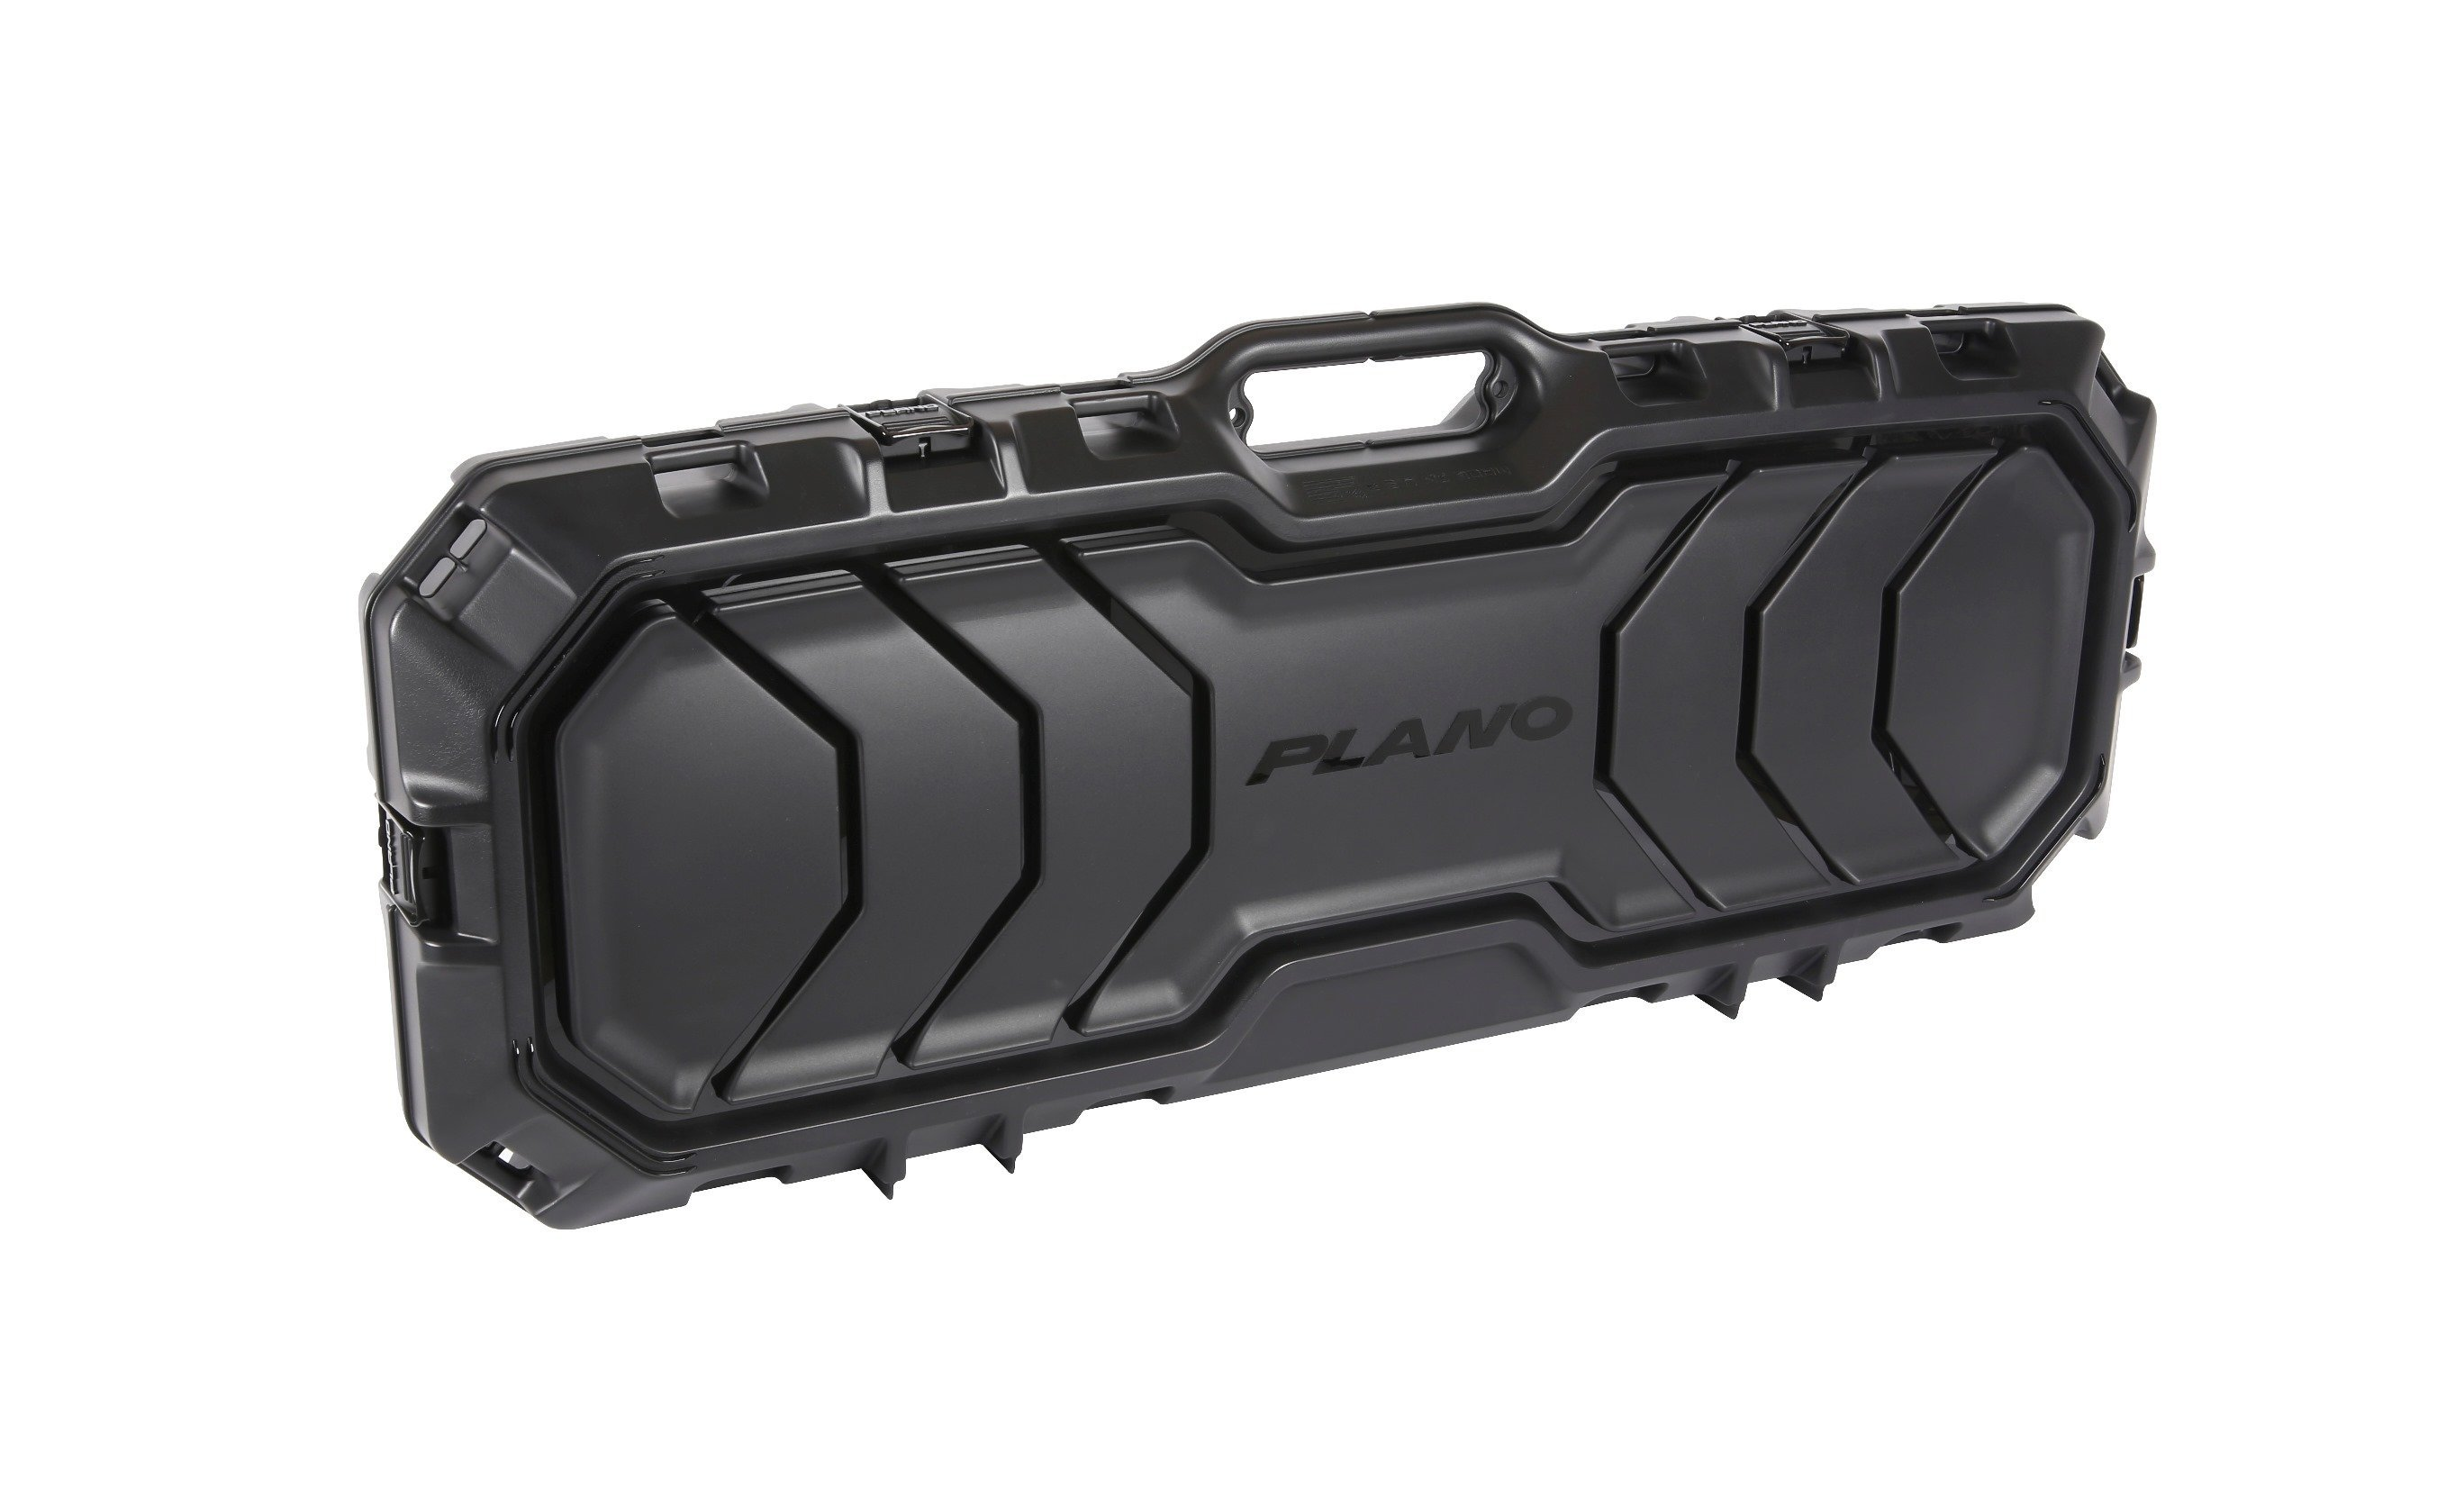 Plano Tactical case